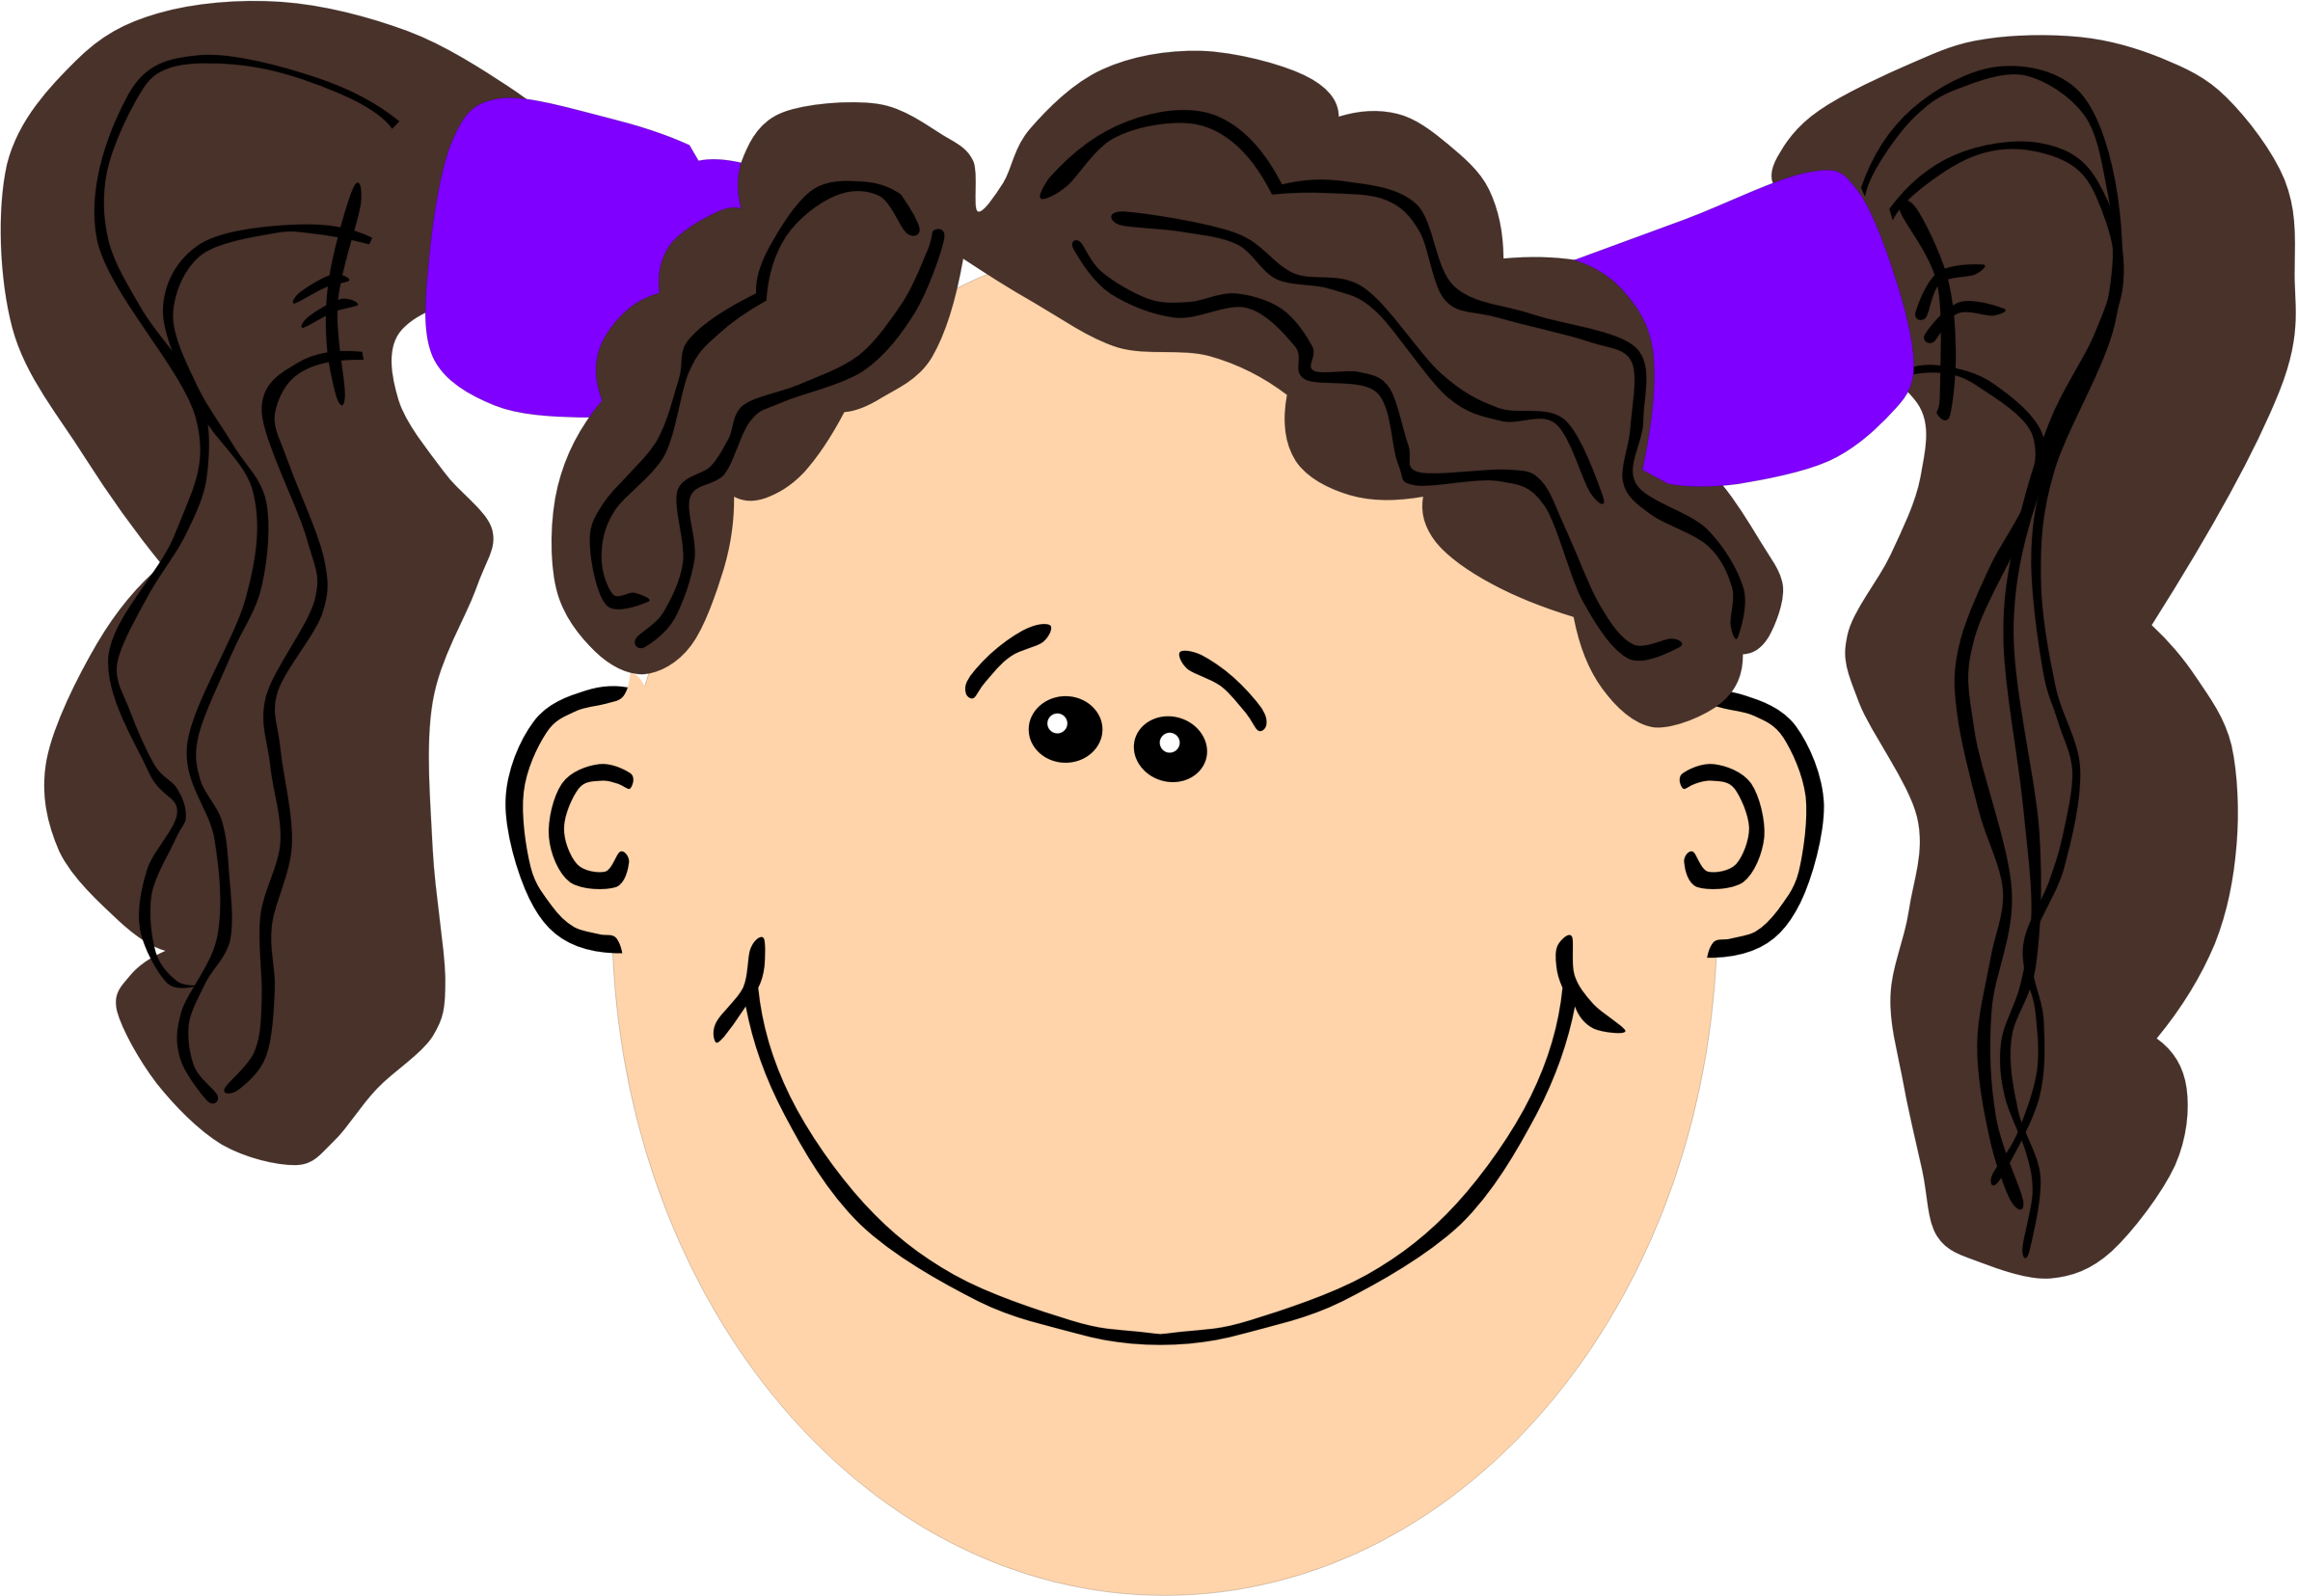 Pig tails png. Girl with brown hair